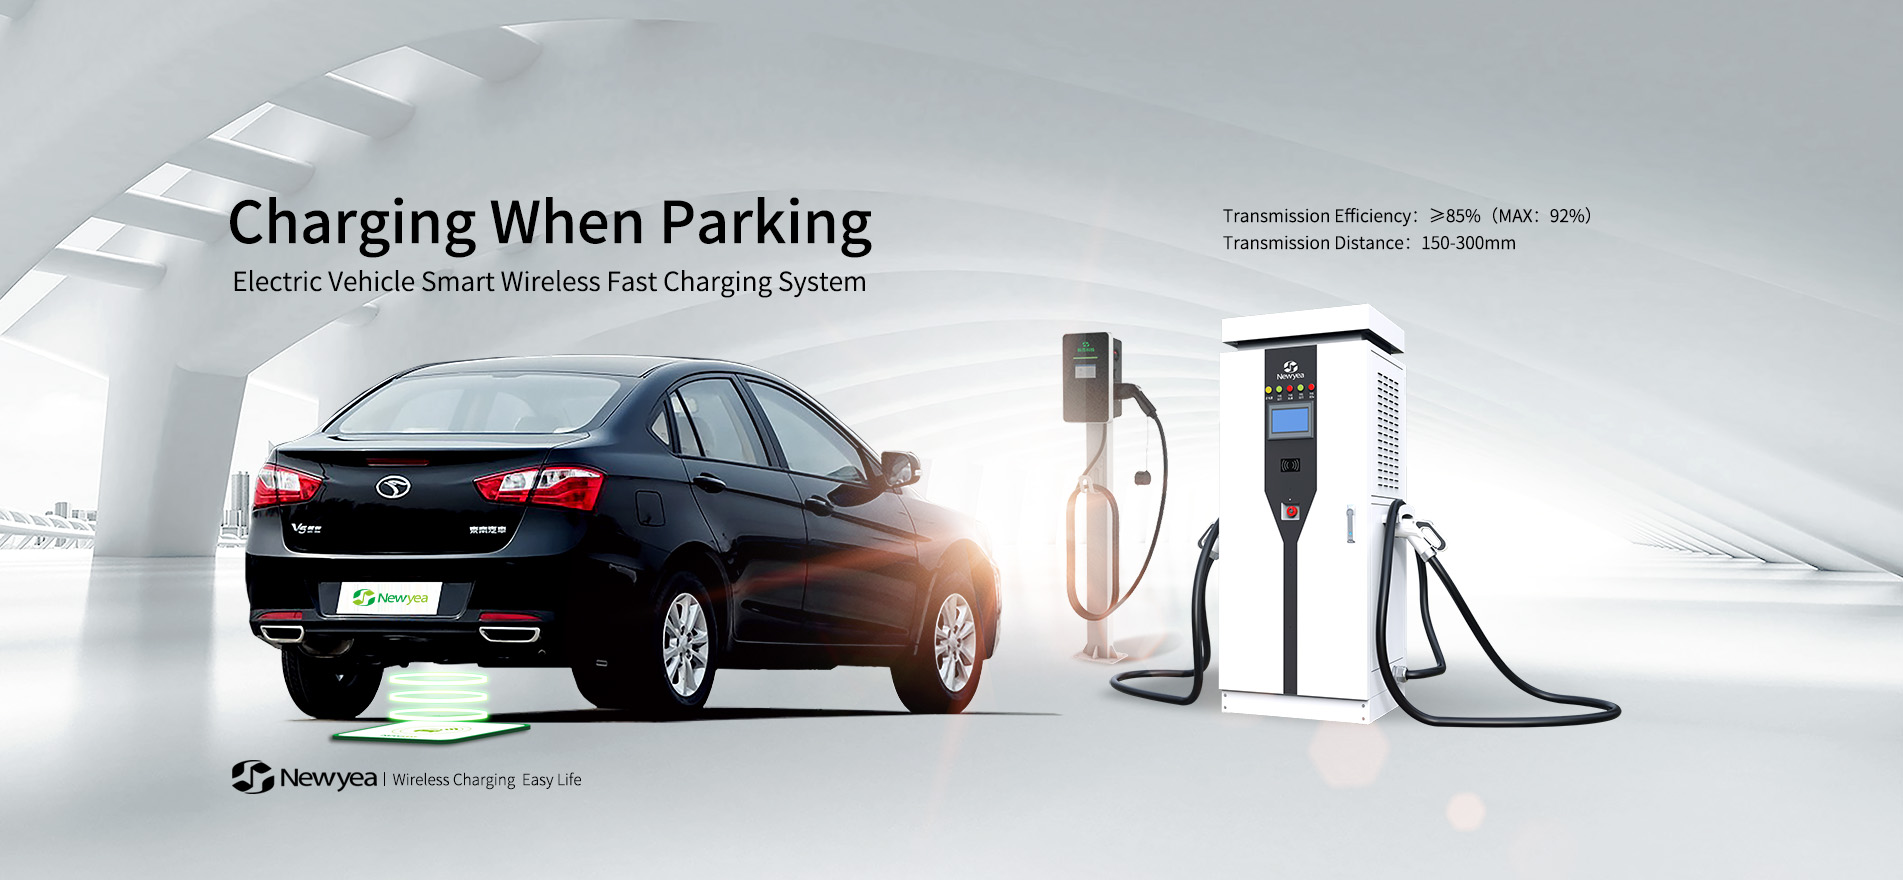 Electric Vehicle Smart Wireless Fast Charging System